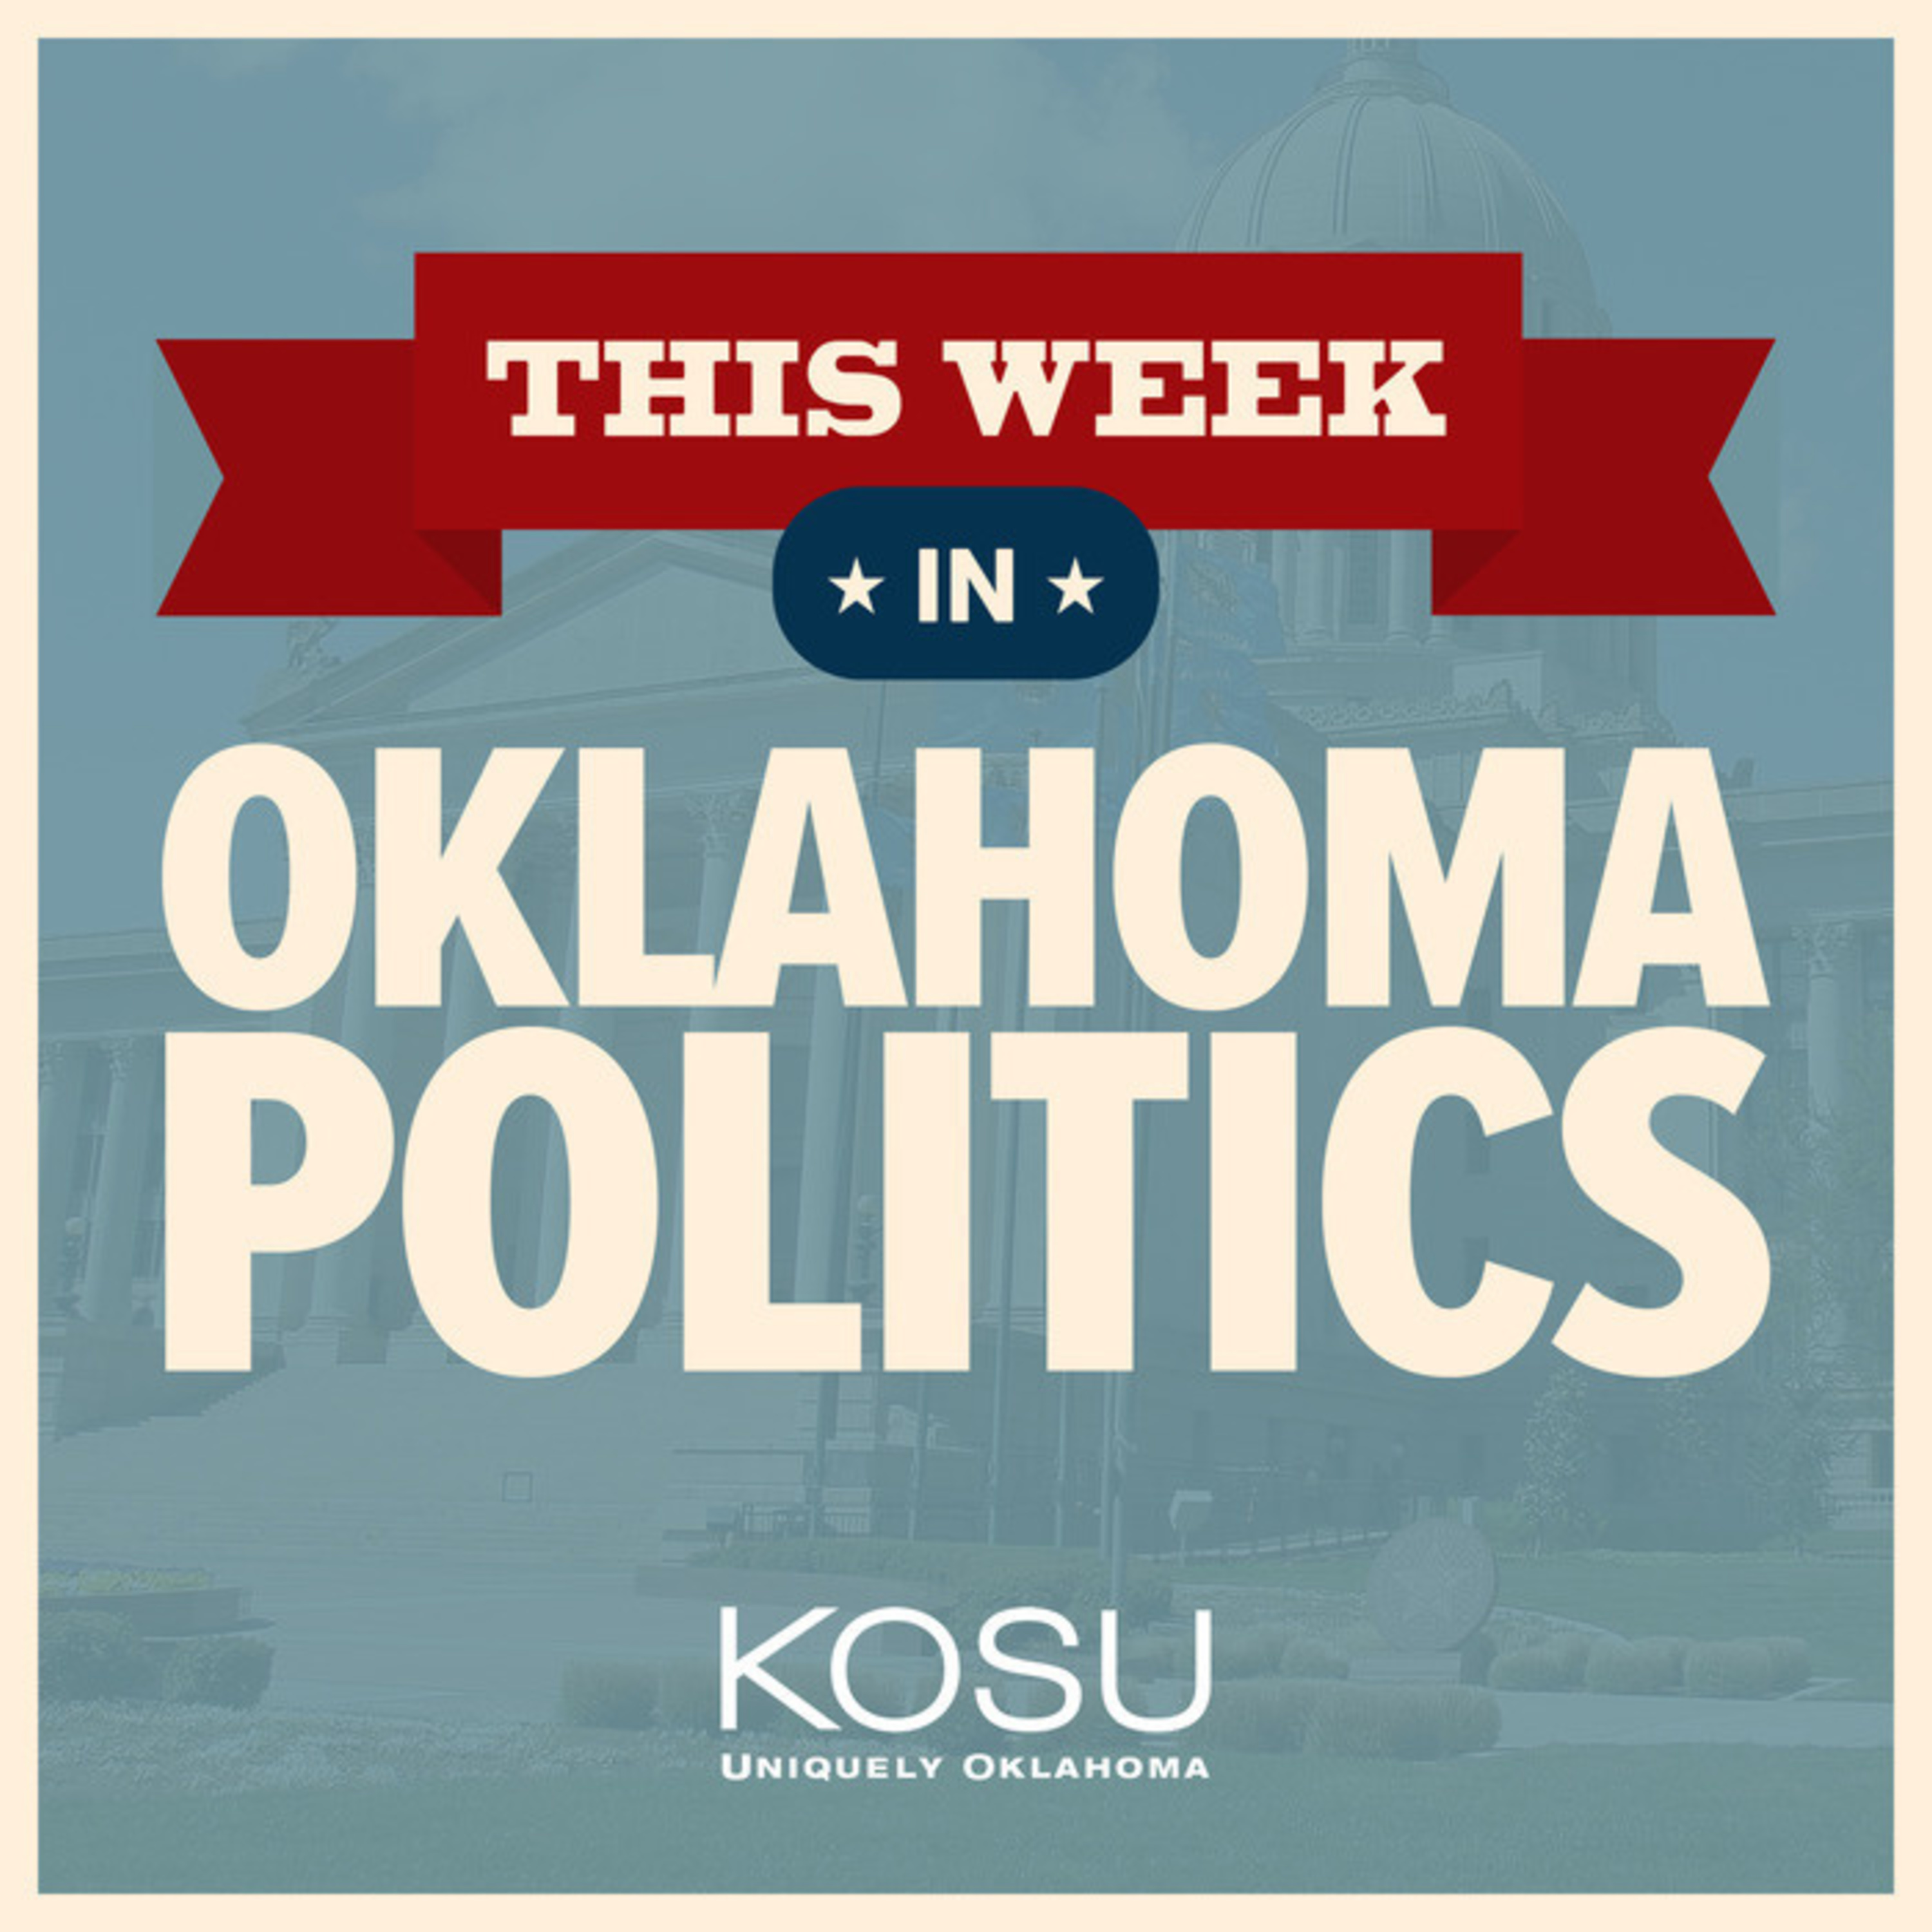 This Week in Oklahoma Politics   Listen Free on Castbox